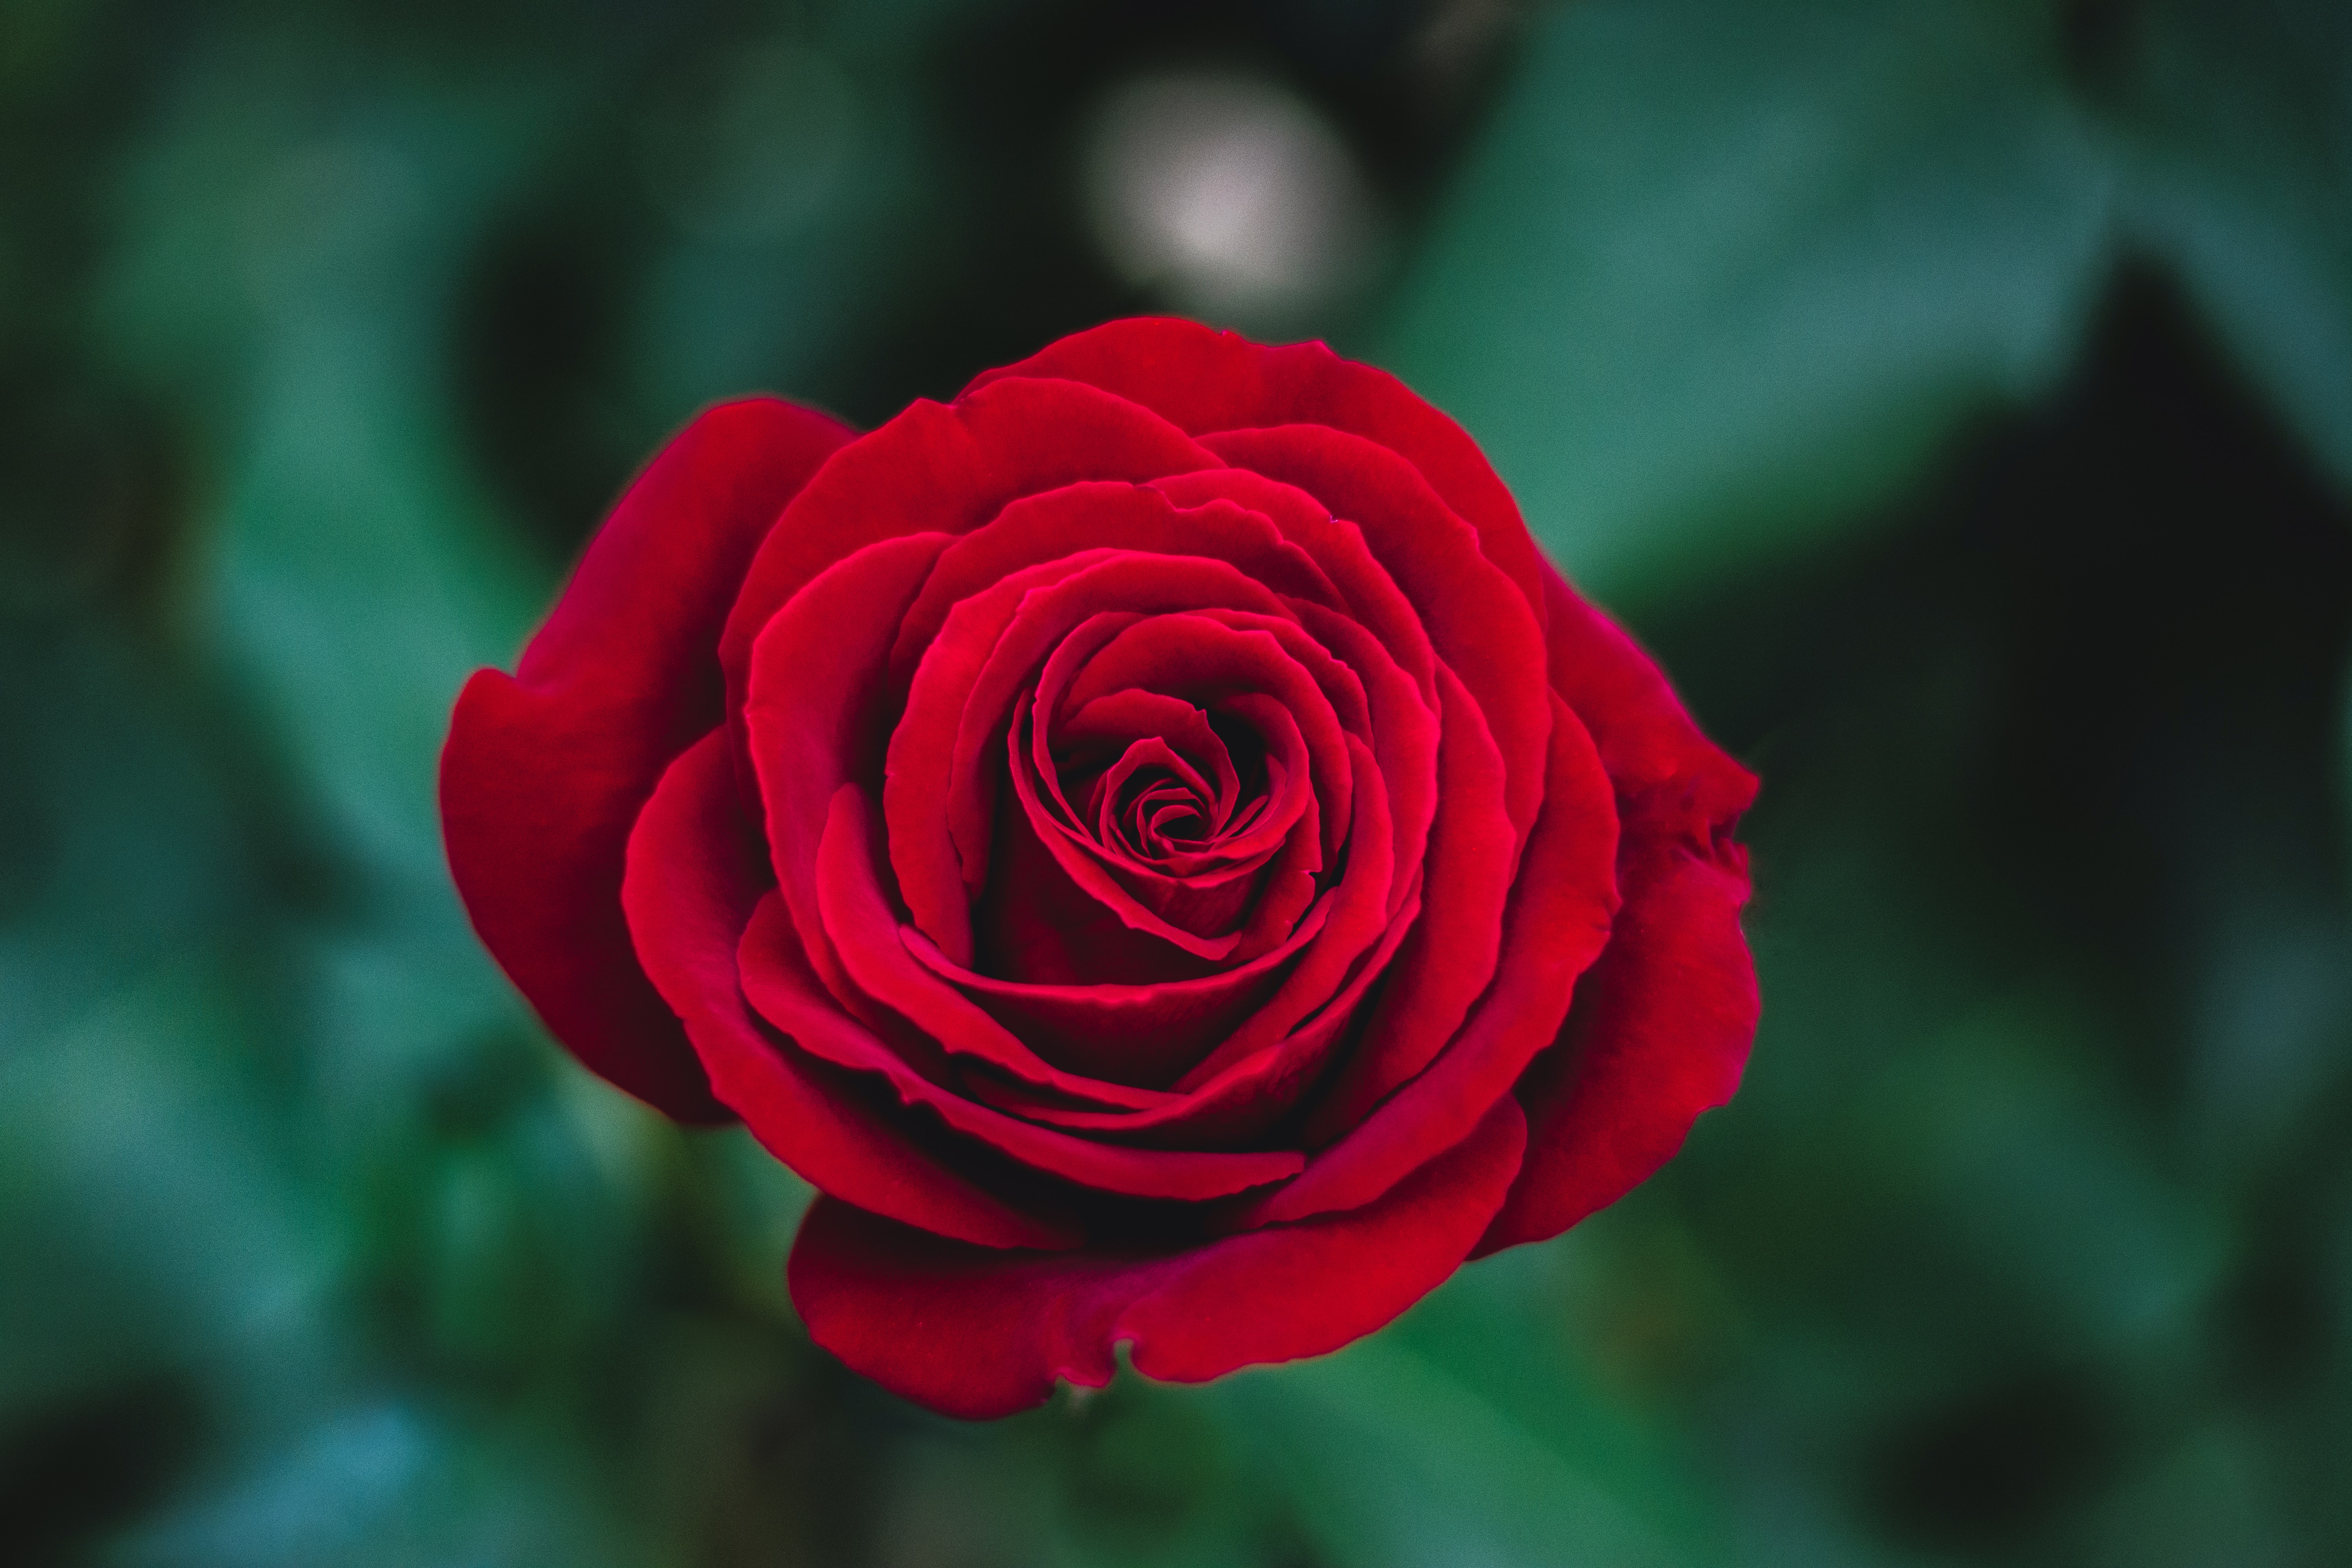 Charming Red Rose Photo By Ivan Jevtic Ivanjevtic On